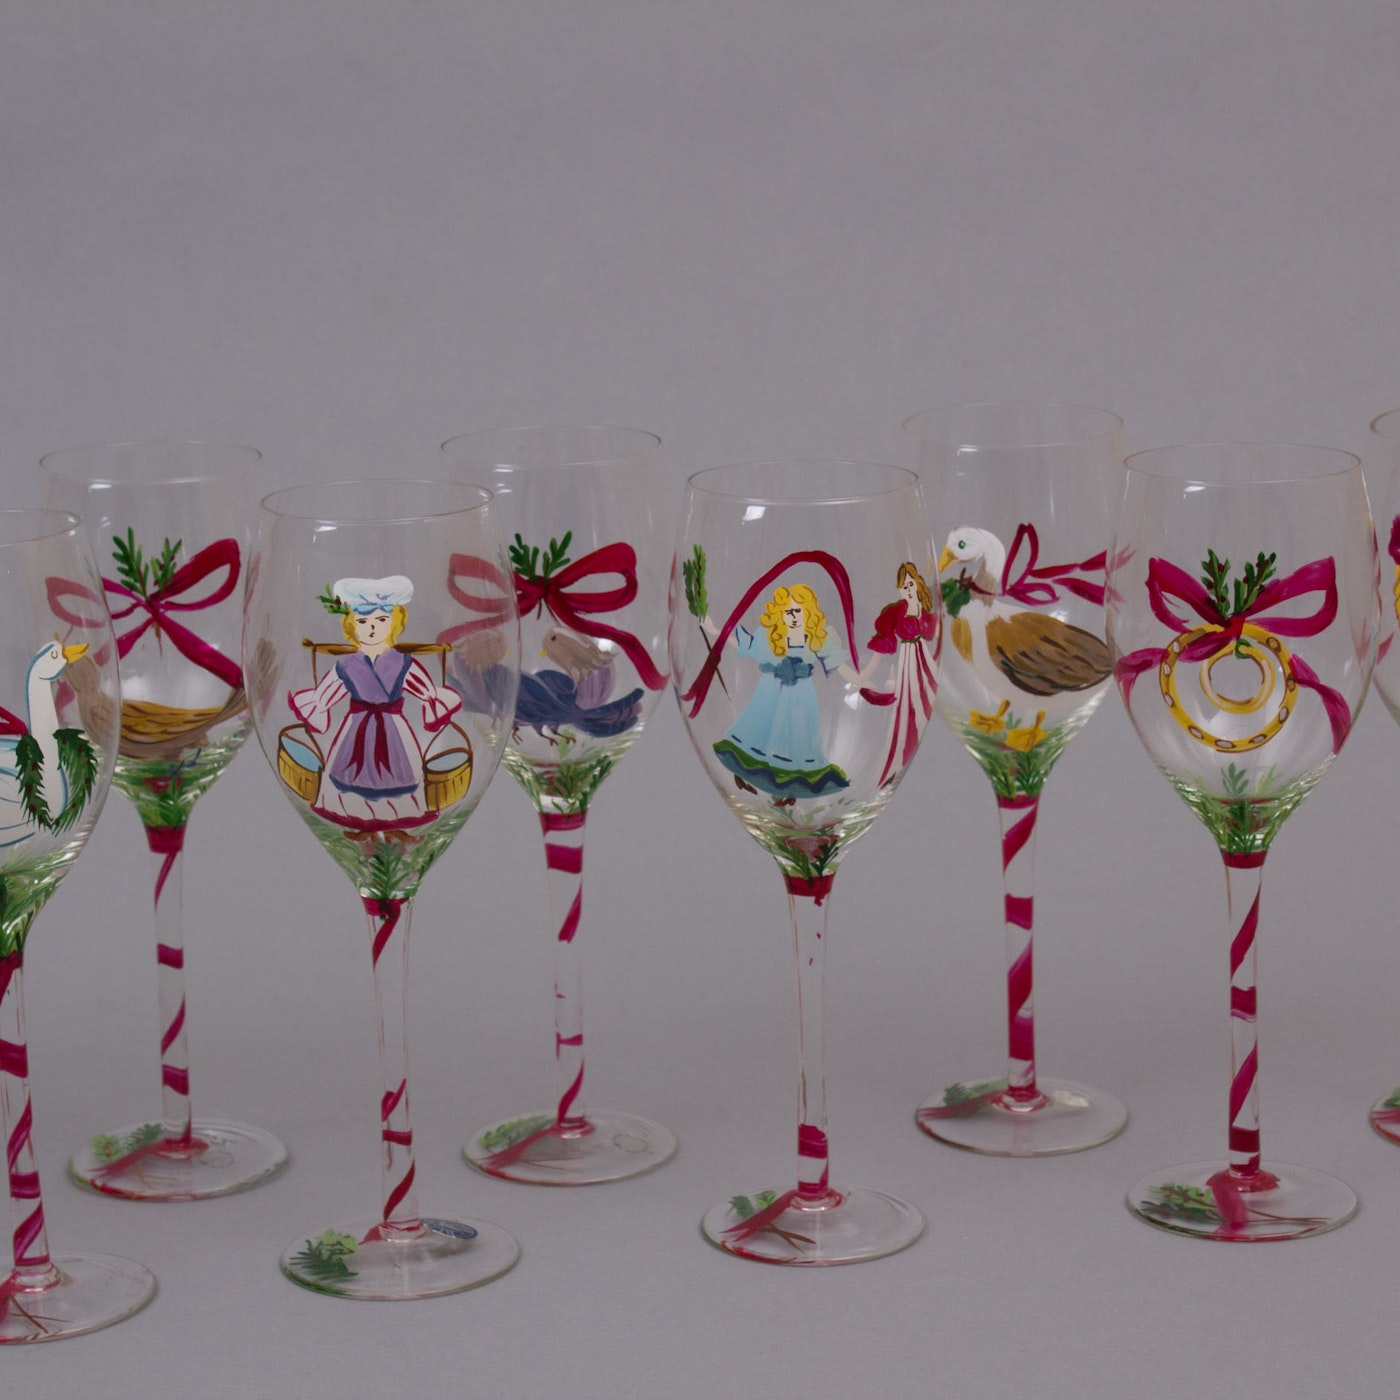 Find great deals on eBay for block basics wine glass. Shop with confidence.